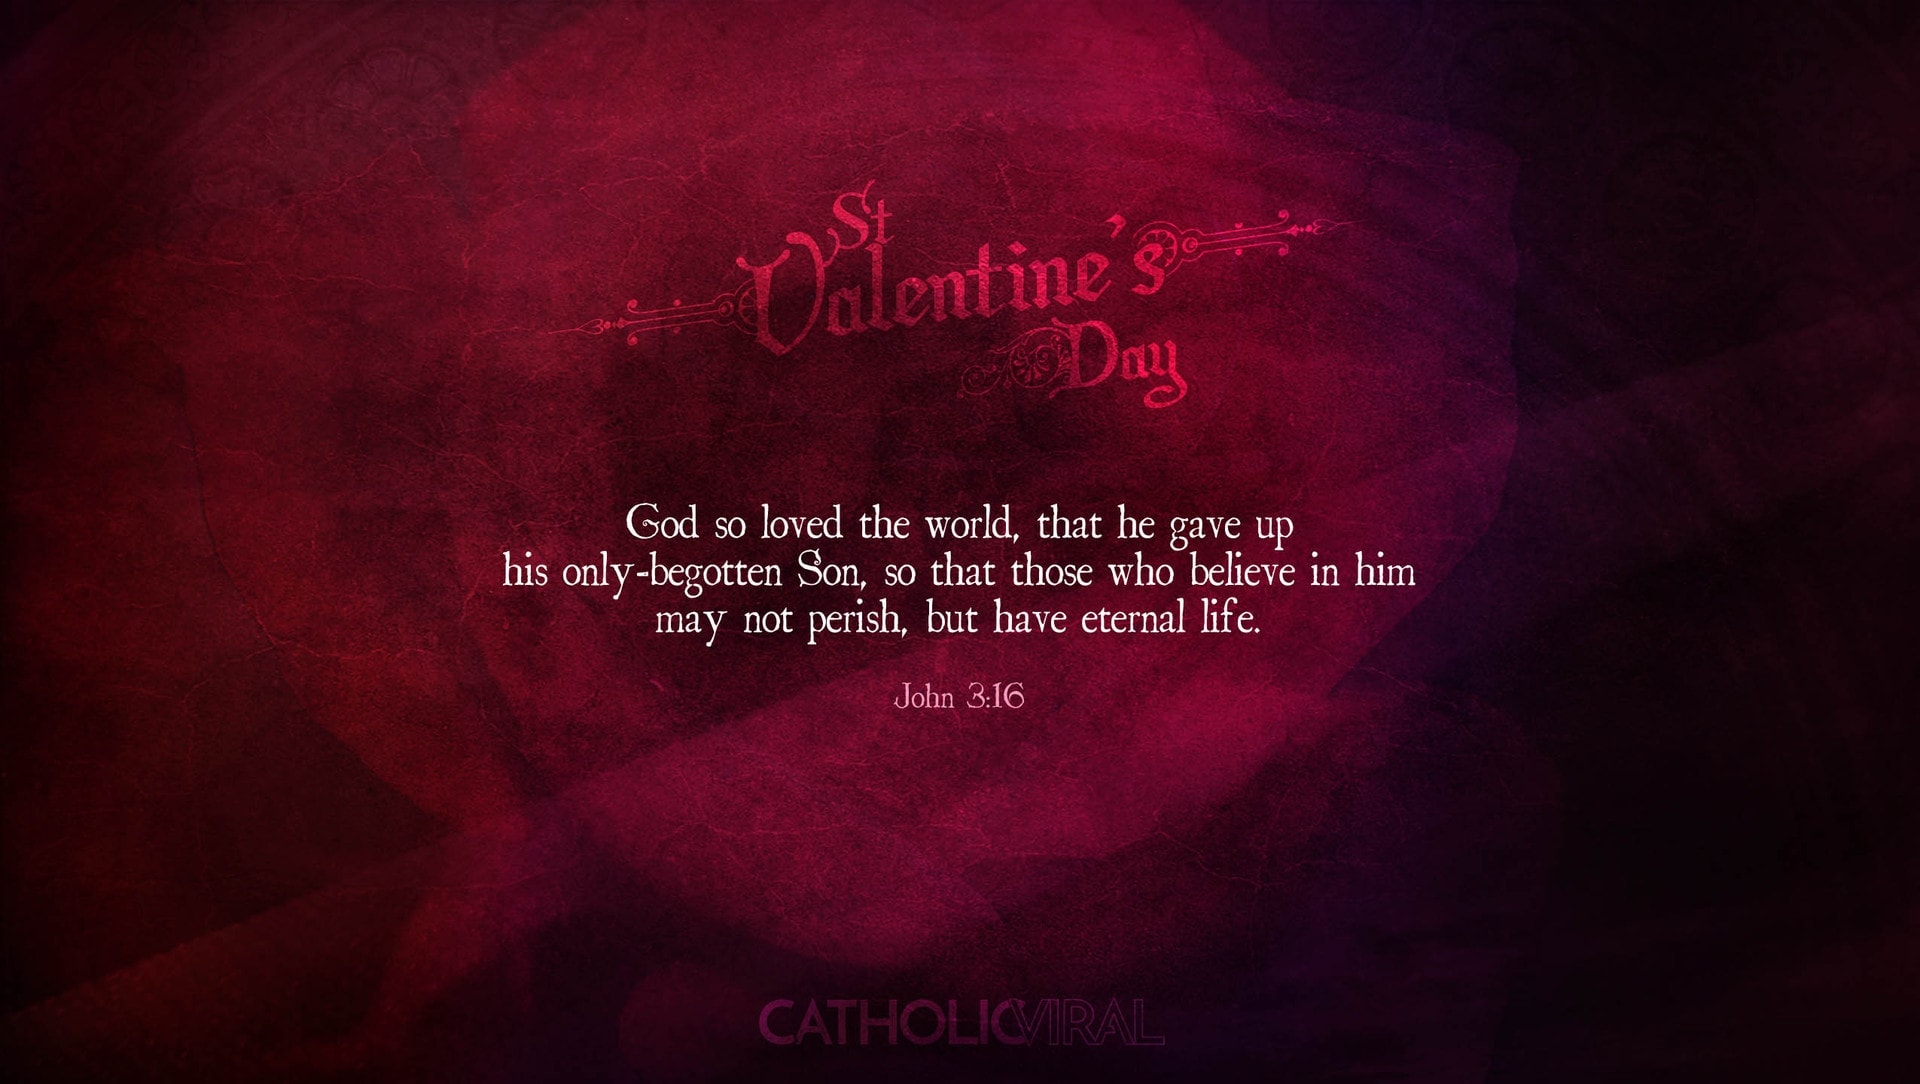 bible love quotes valentines day valentines day bible verses on love free - Bible Verse For Valentines Day